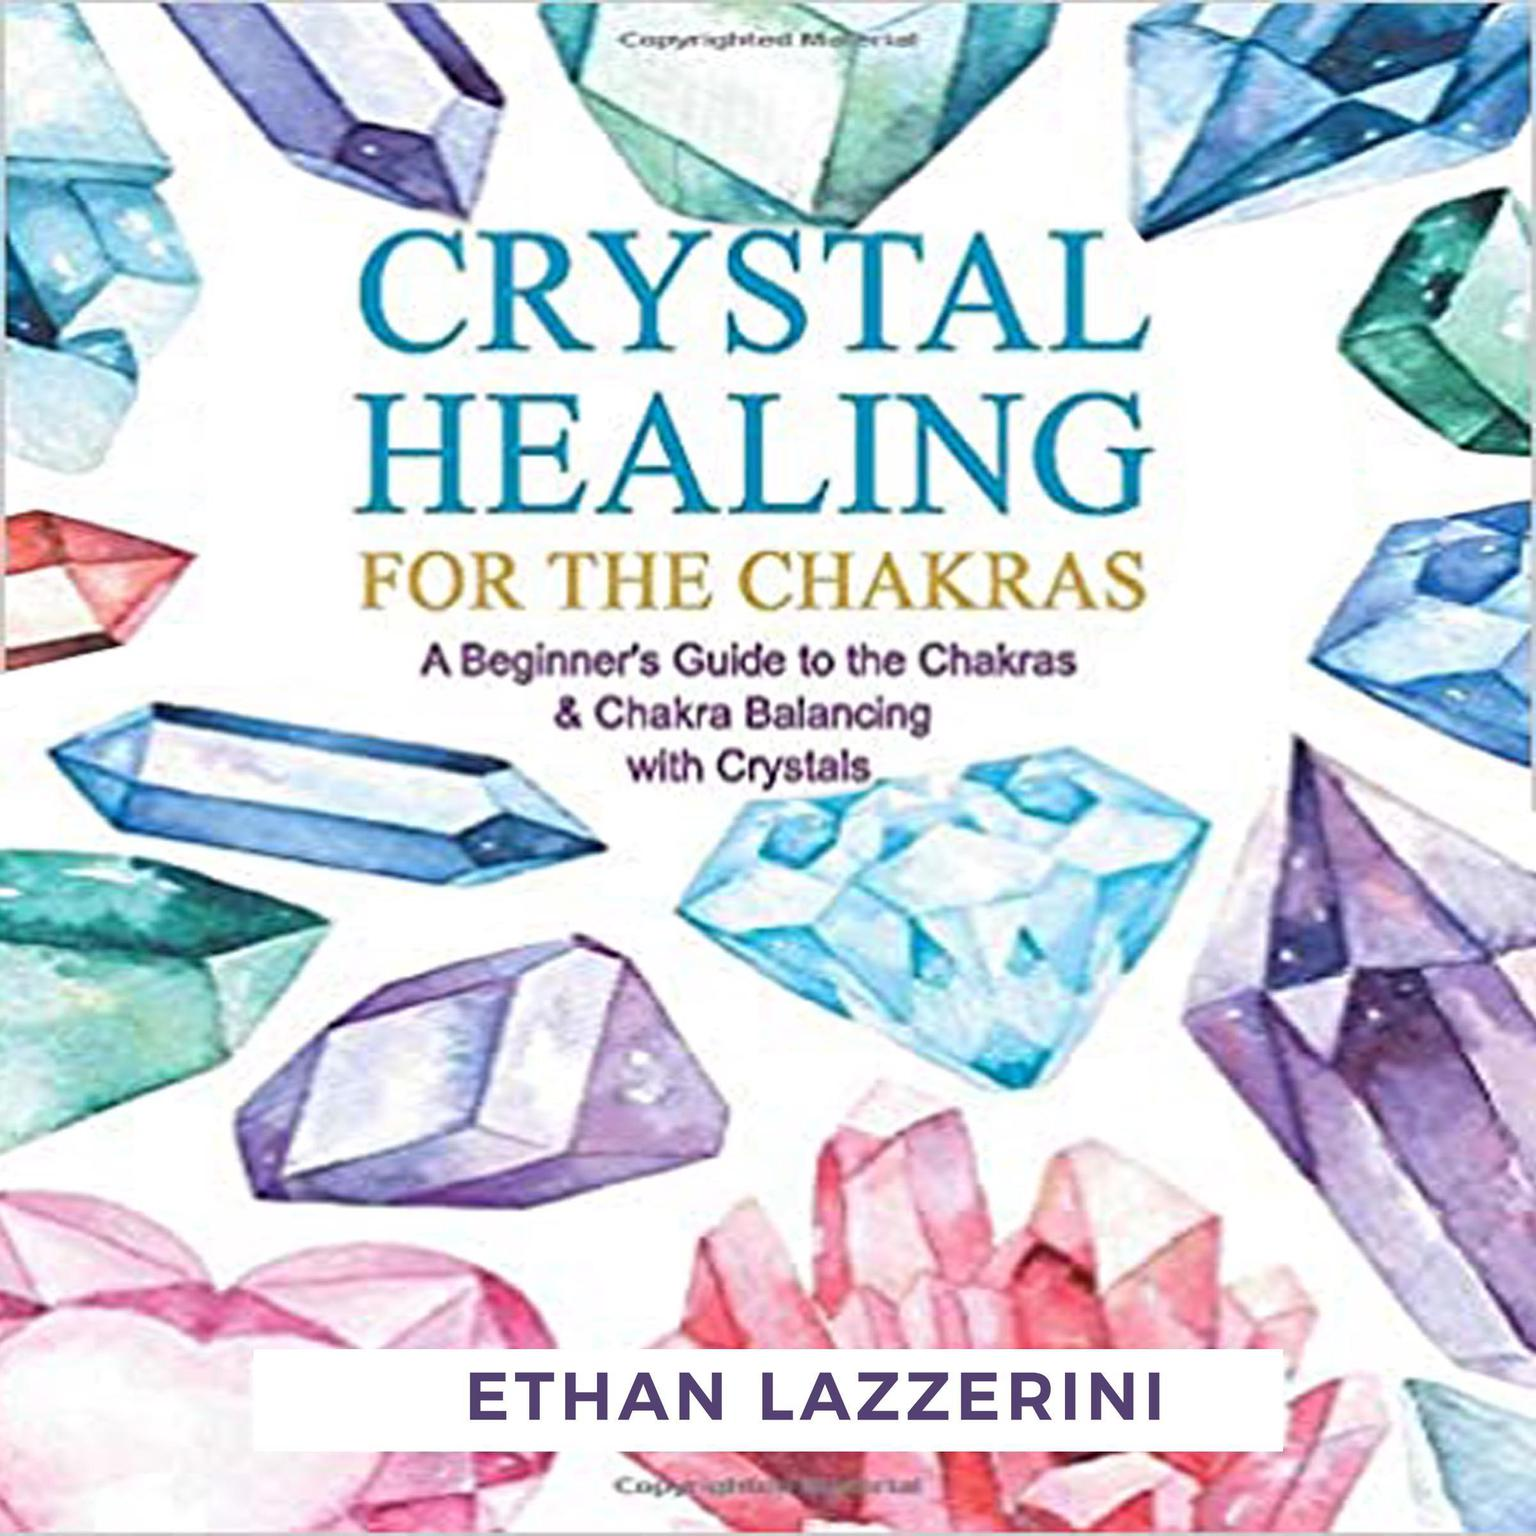 Crystal Healing For The Chakras: A Beginners Guide To The Chakras And Chakra Balancing With Crystals (Abridged) Audiobook, by Ethan Lazzerini